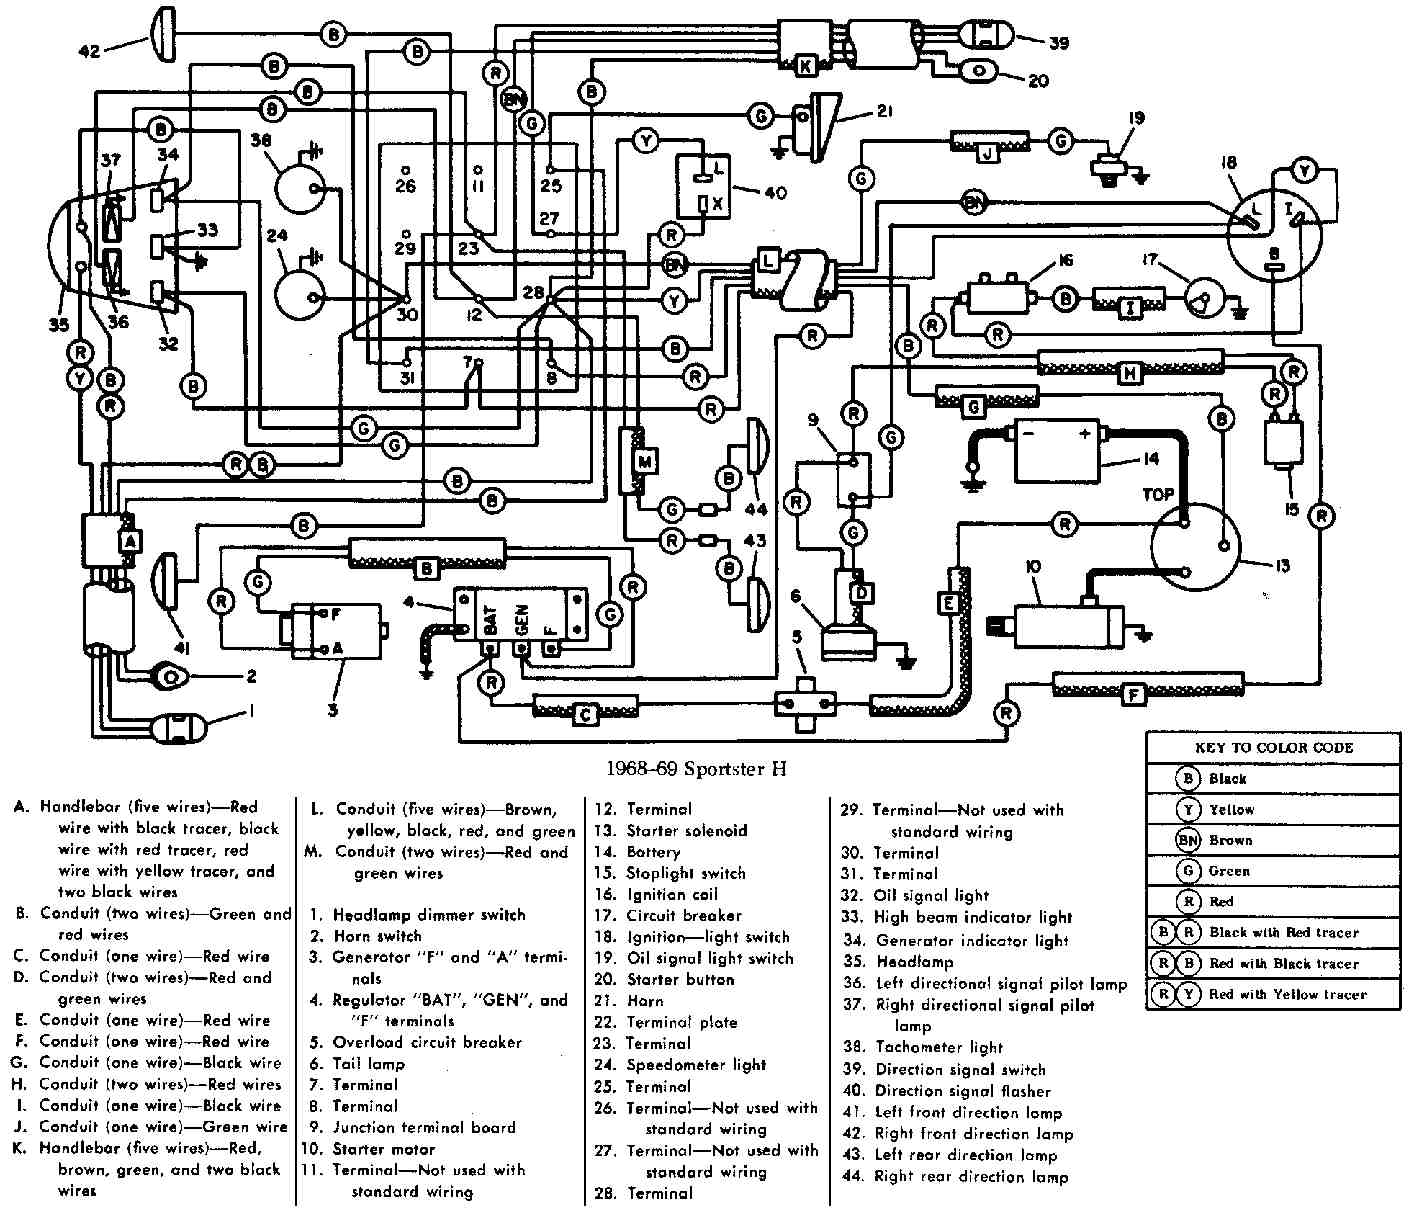 2004 Ford Ranger Wiring Diagram In 0900c152800781d1 Gif Striking 2006 To as well Saturn Vue 2001 2004 Fuse Box Diagram together with T1721231 Fuel cut off switch location together with Chrysler 300m Thermostat Location in addition Harley Davidson Sportster 1968 1969. on 1996 chrysler town and country fuse box diagram